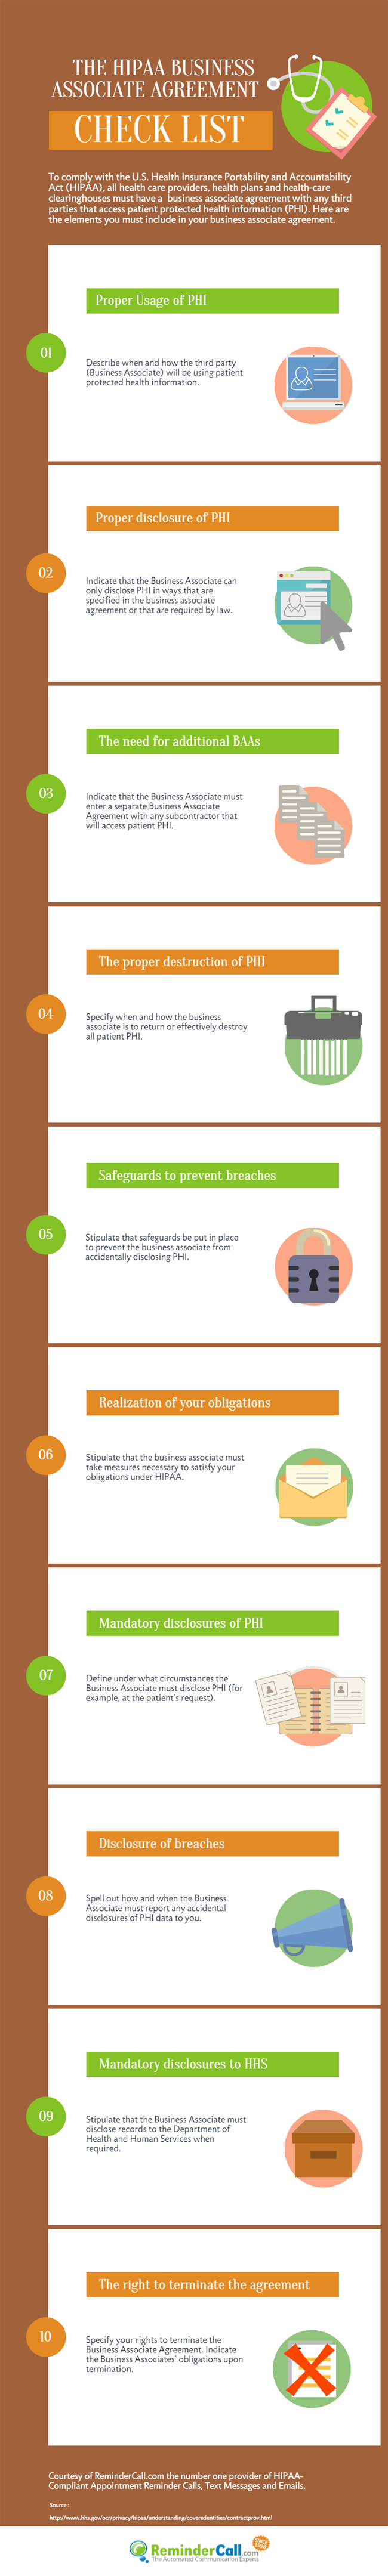 Hipaa Business Associate Agreement Check List Infographic